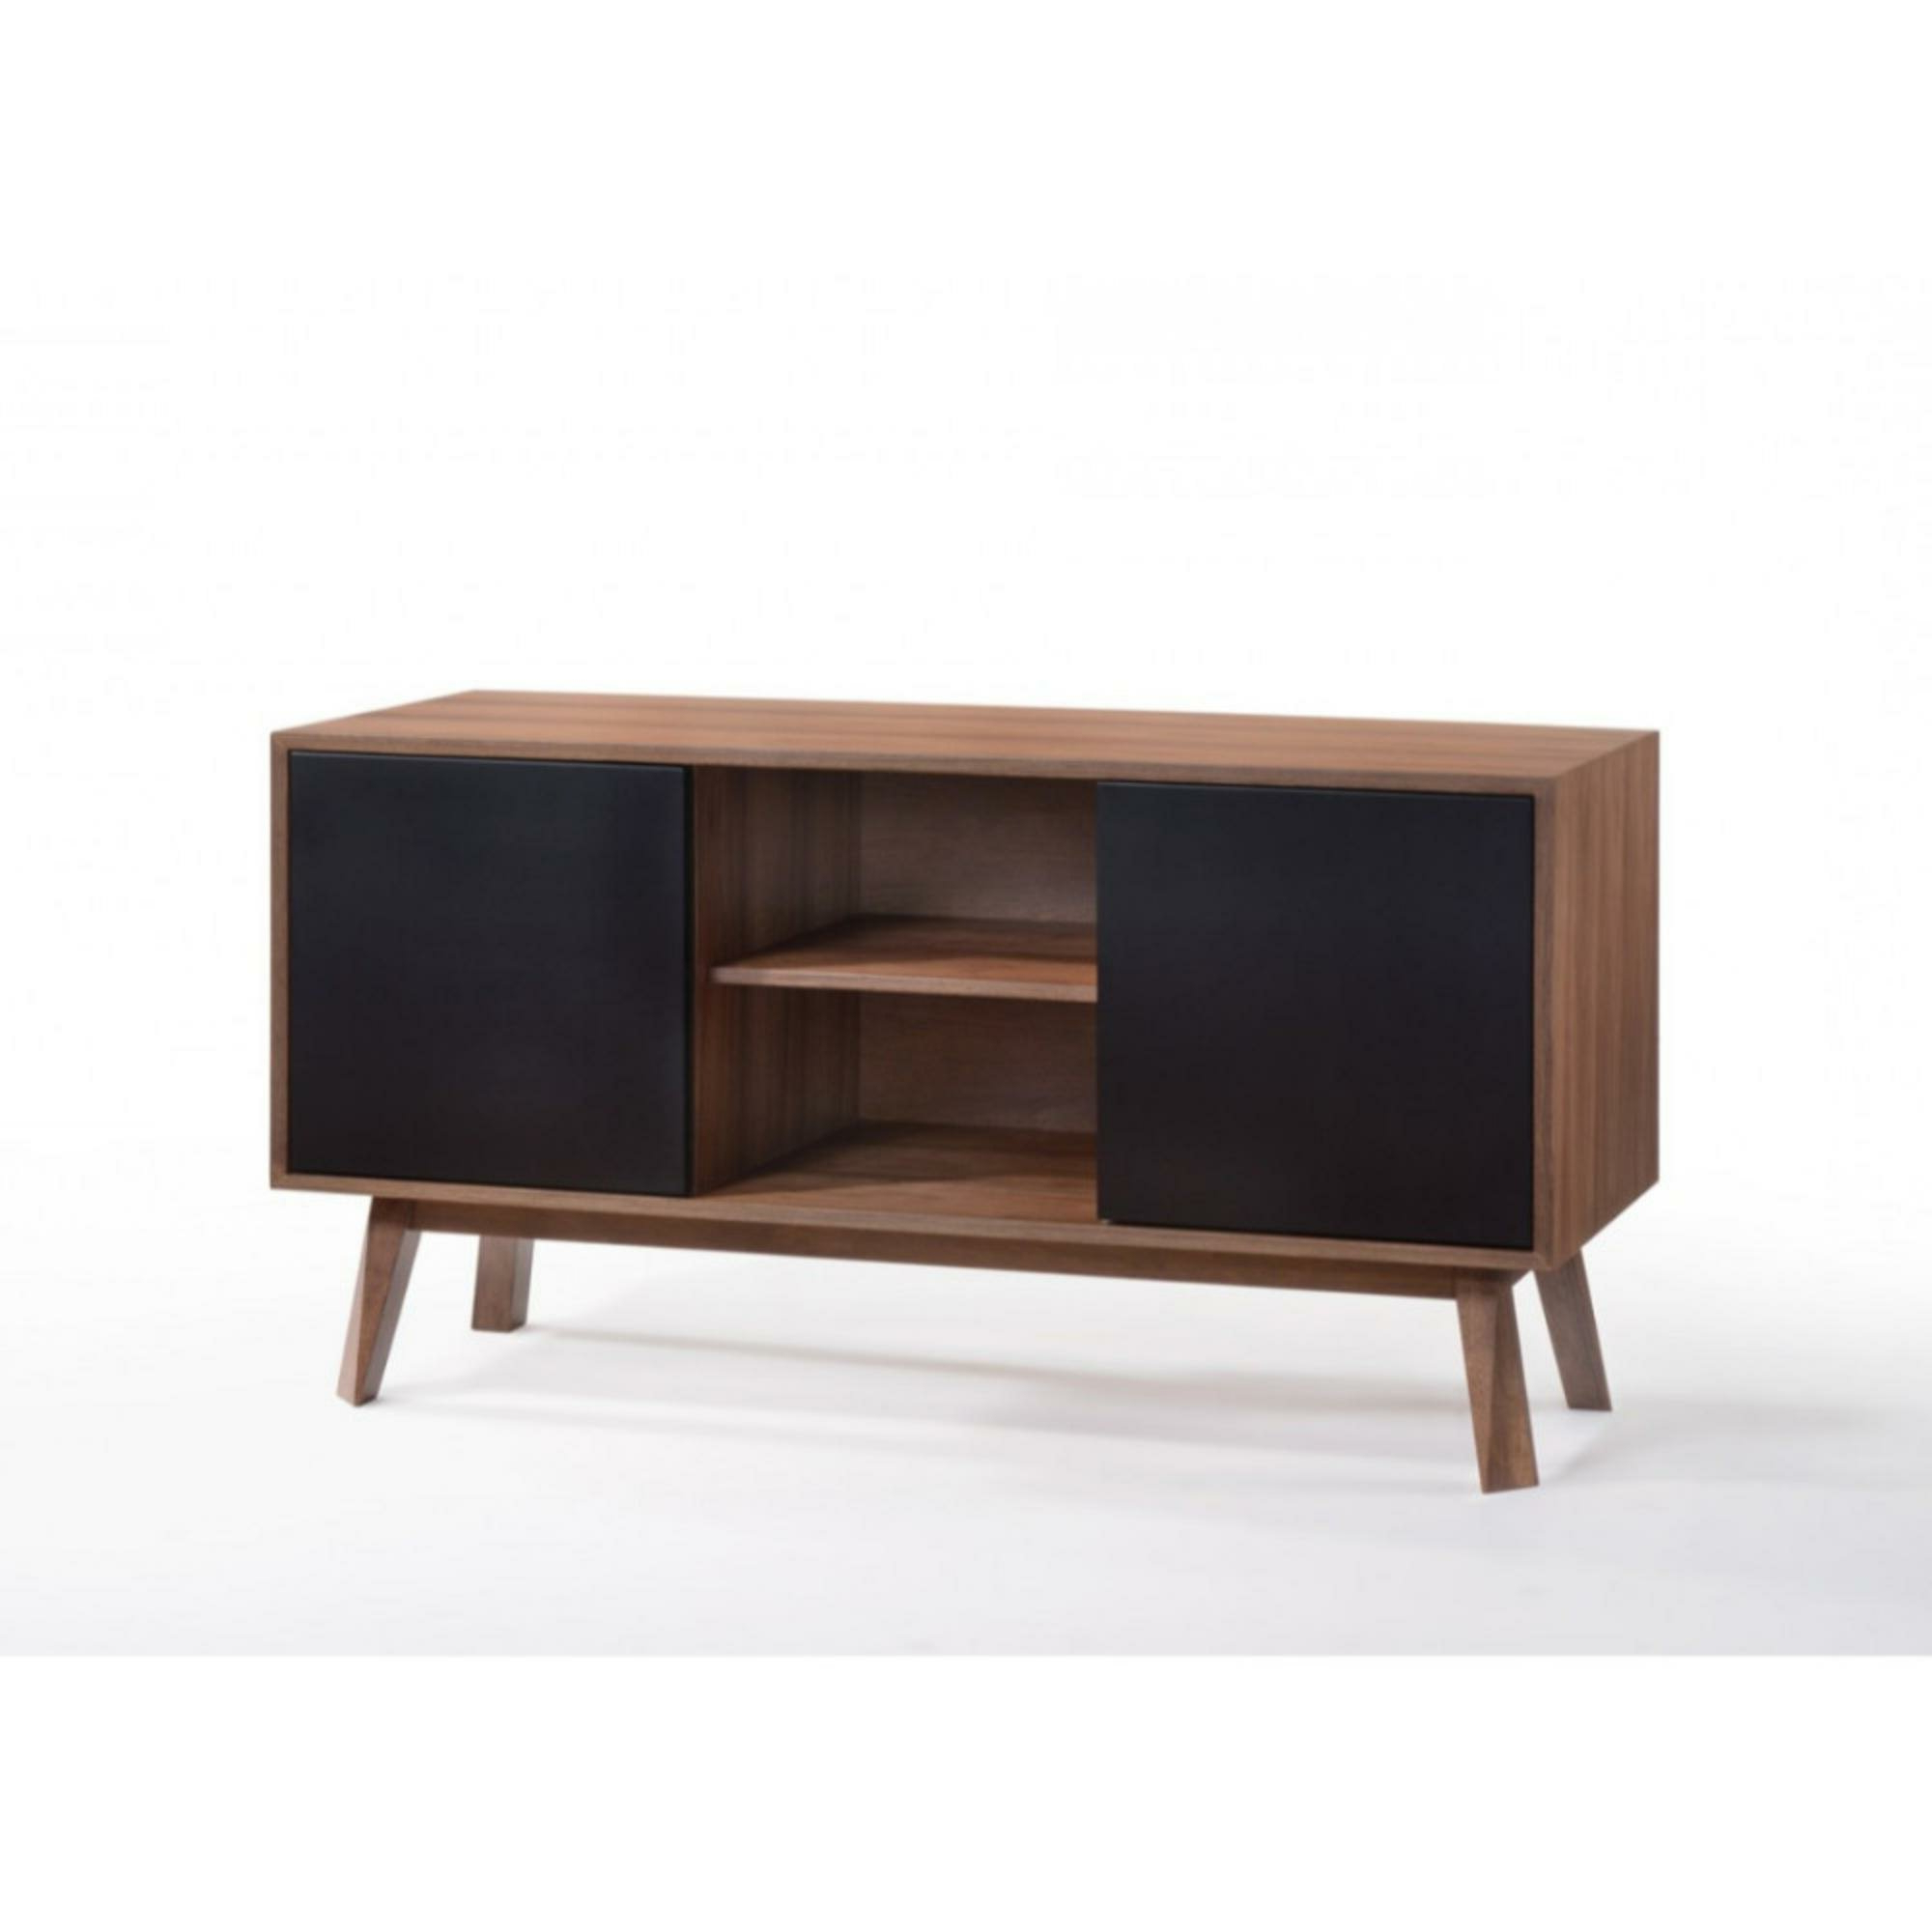 Gamboa Wooden Server Buffet Table Inside Contemporary Wooden Buffets With Four Open Compartments And Metal Tapered Legs (View 12 of 20)